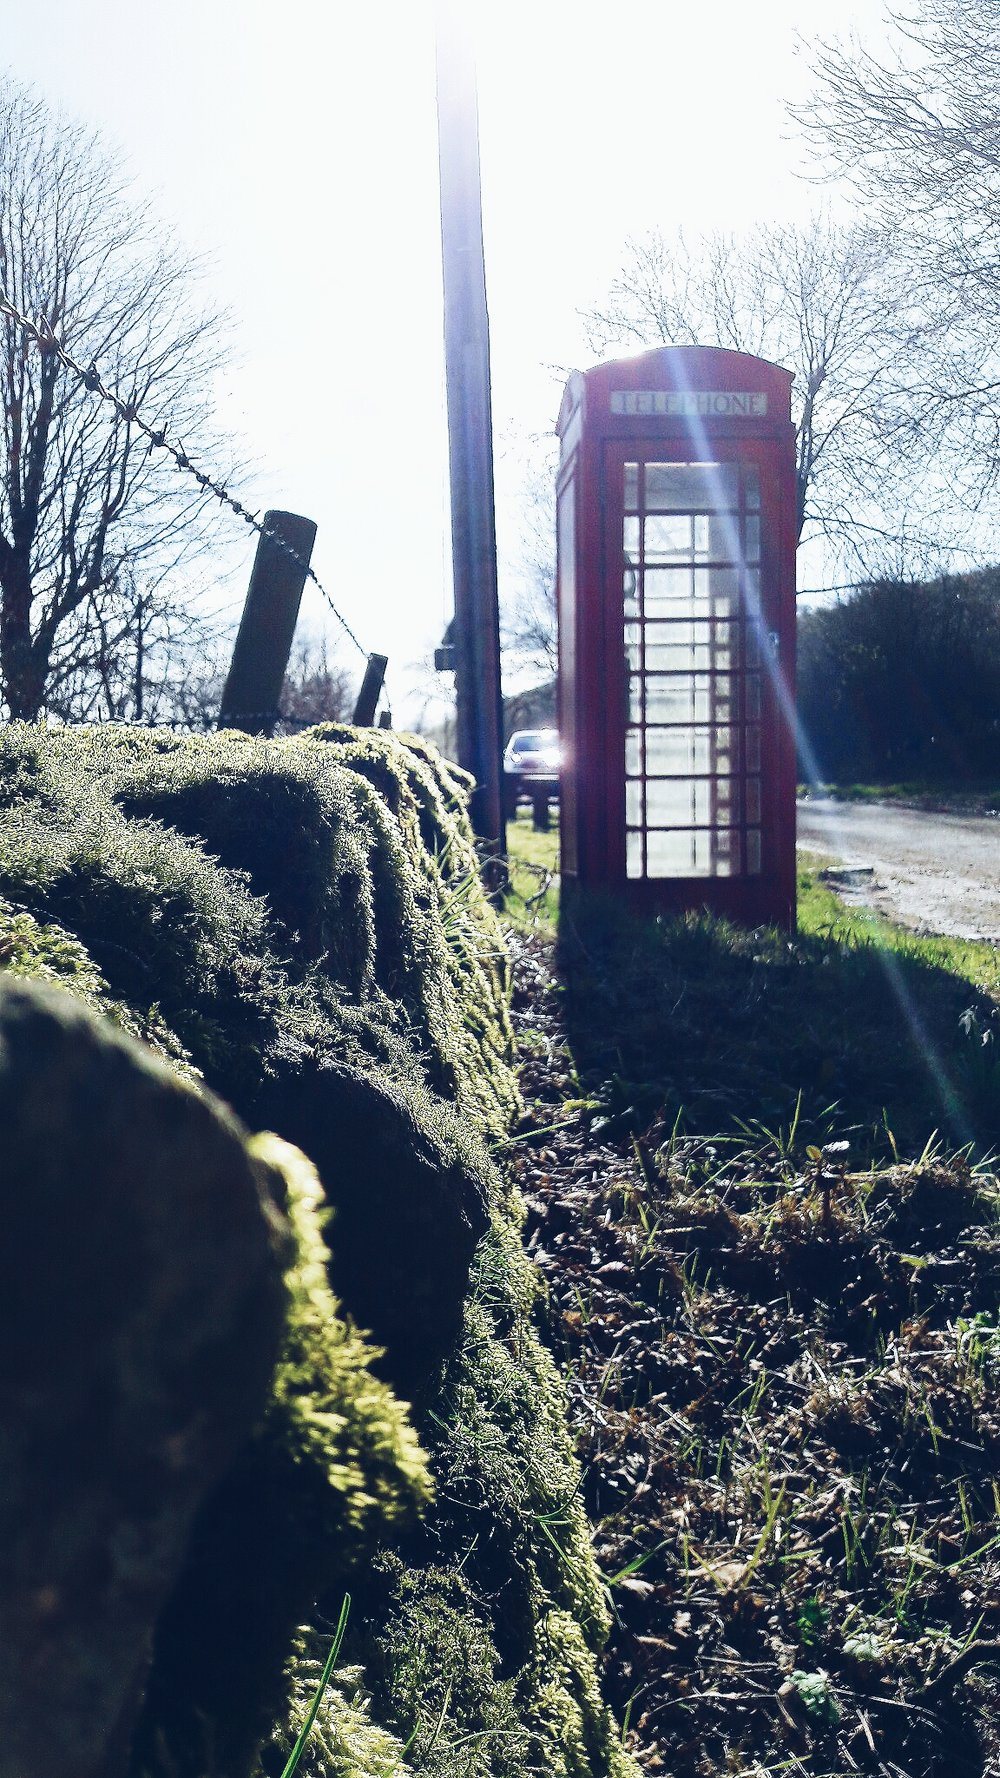 Telephone box in Hollinsclough